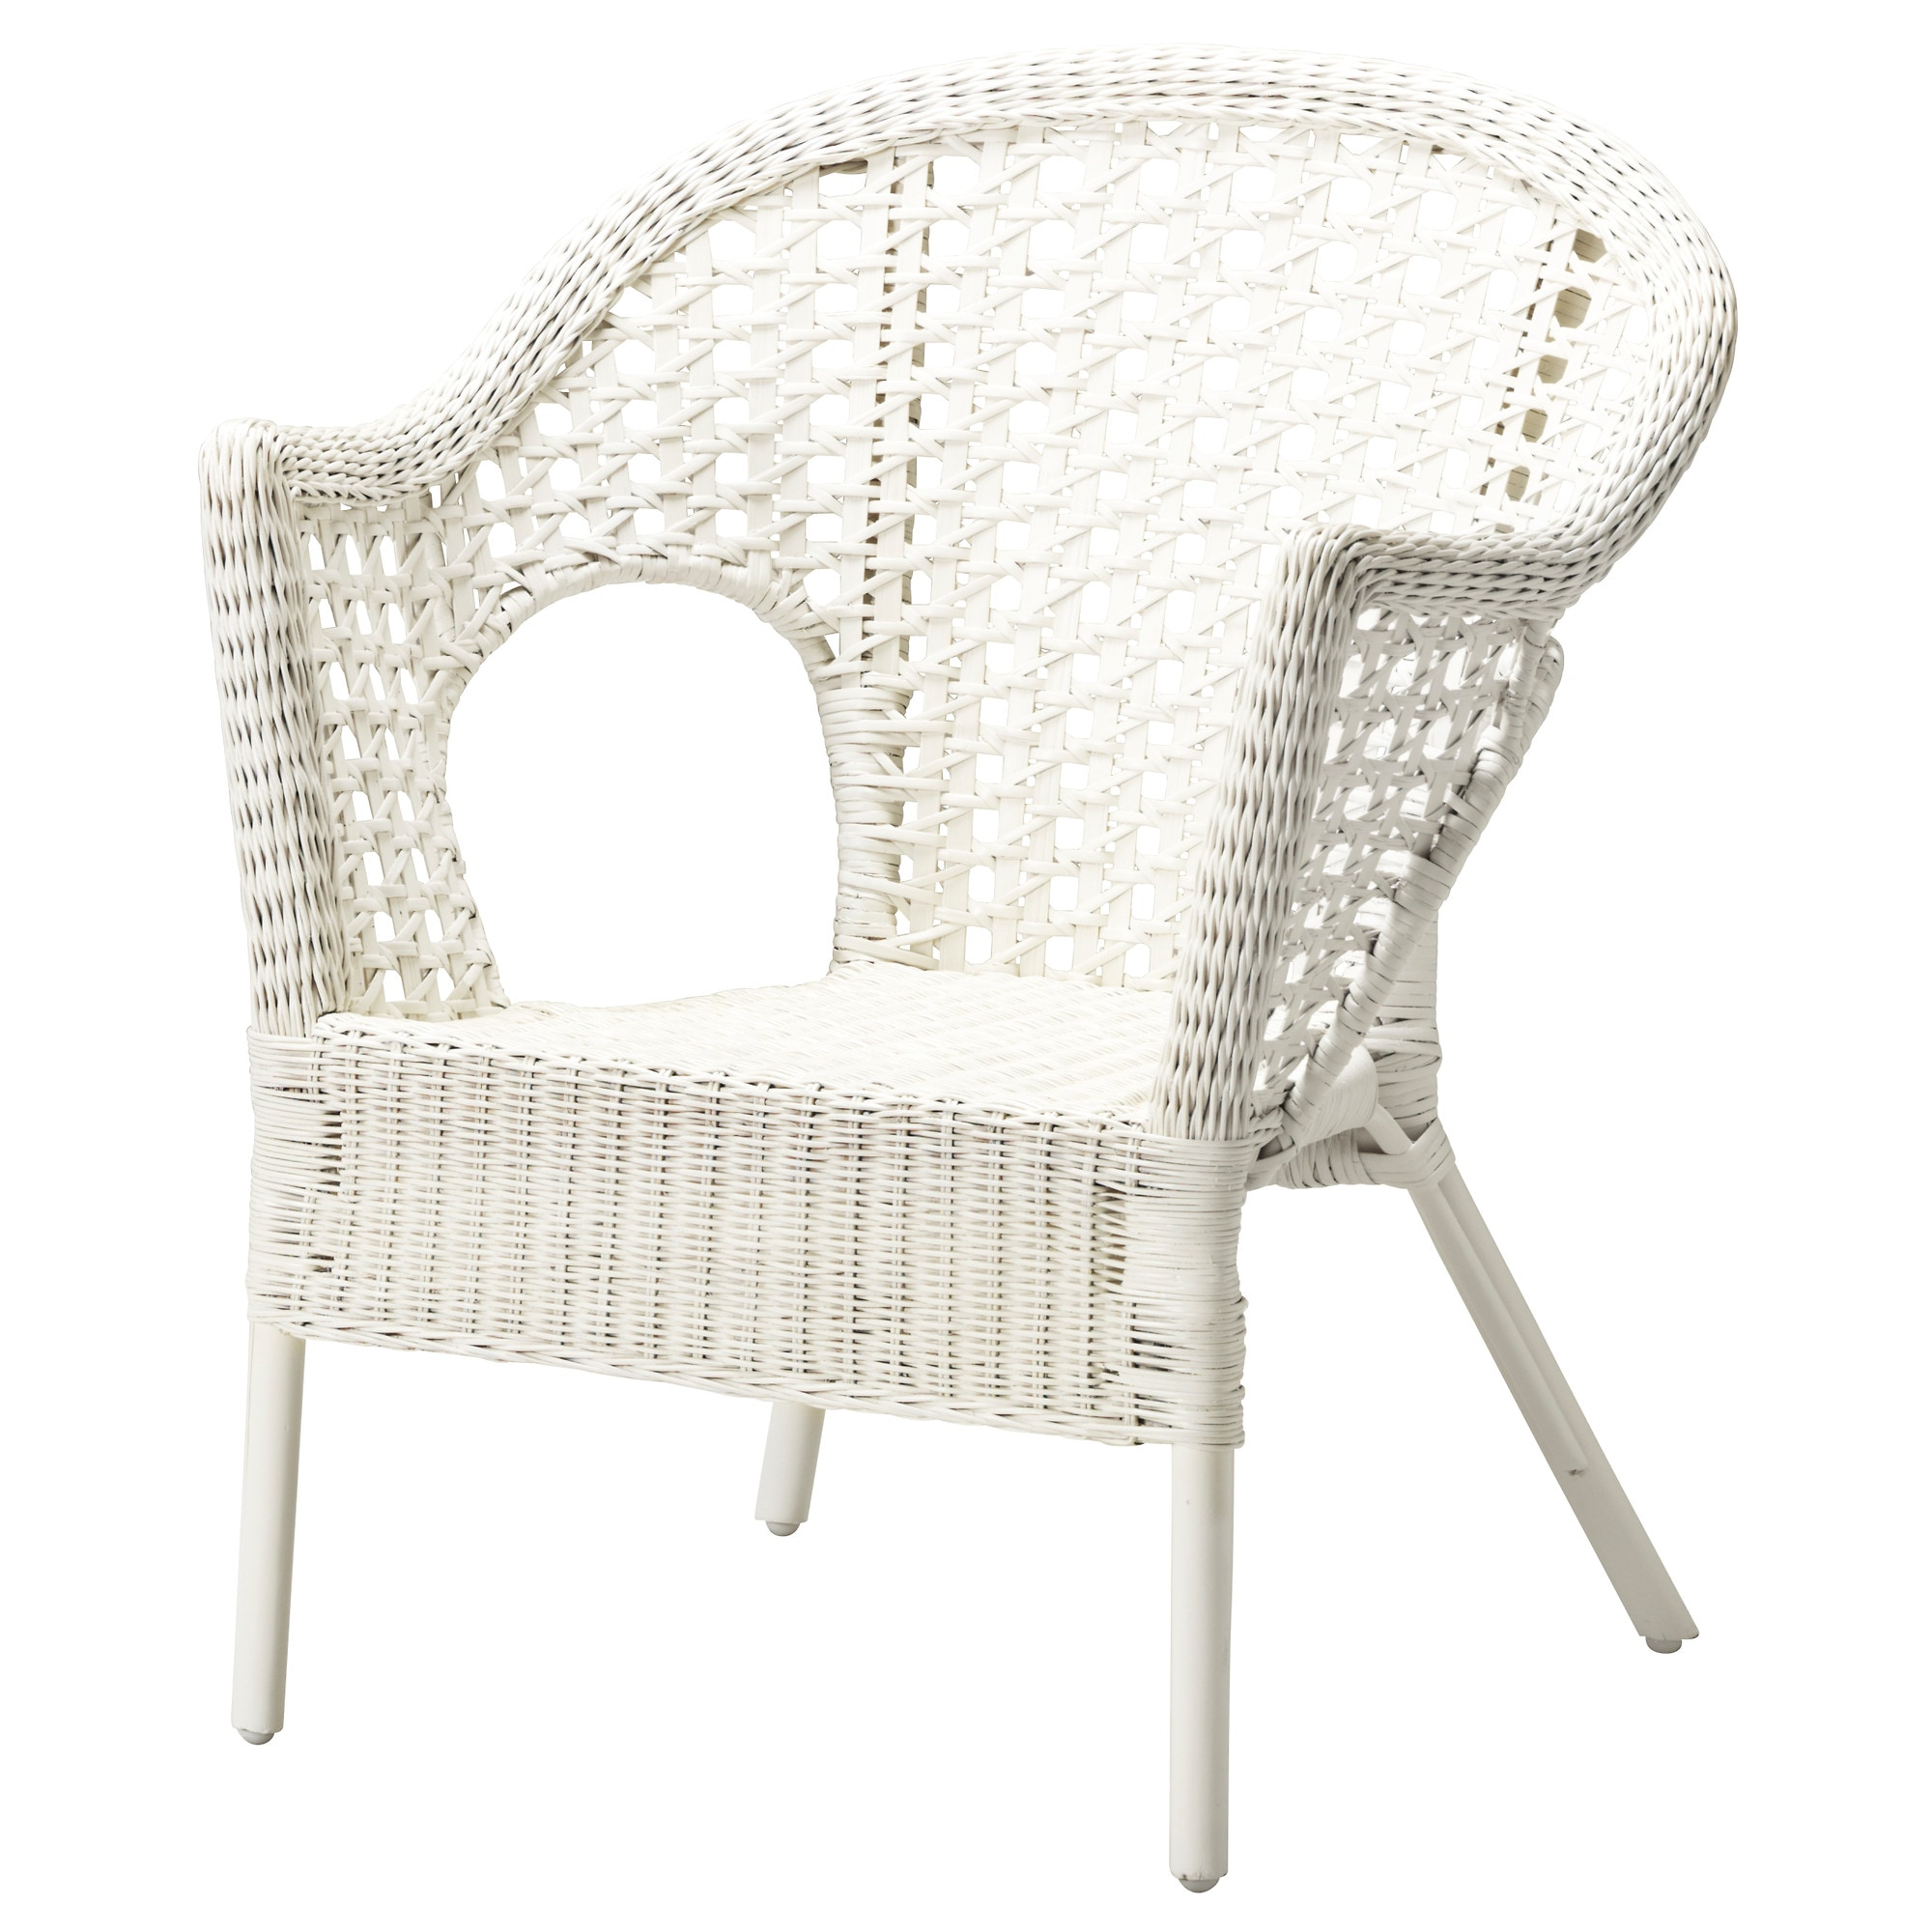 Basket chair ikea - Basket Chair Ikea